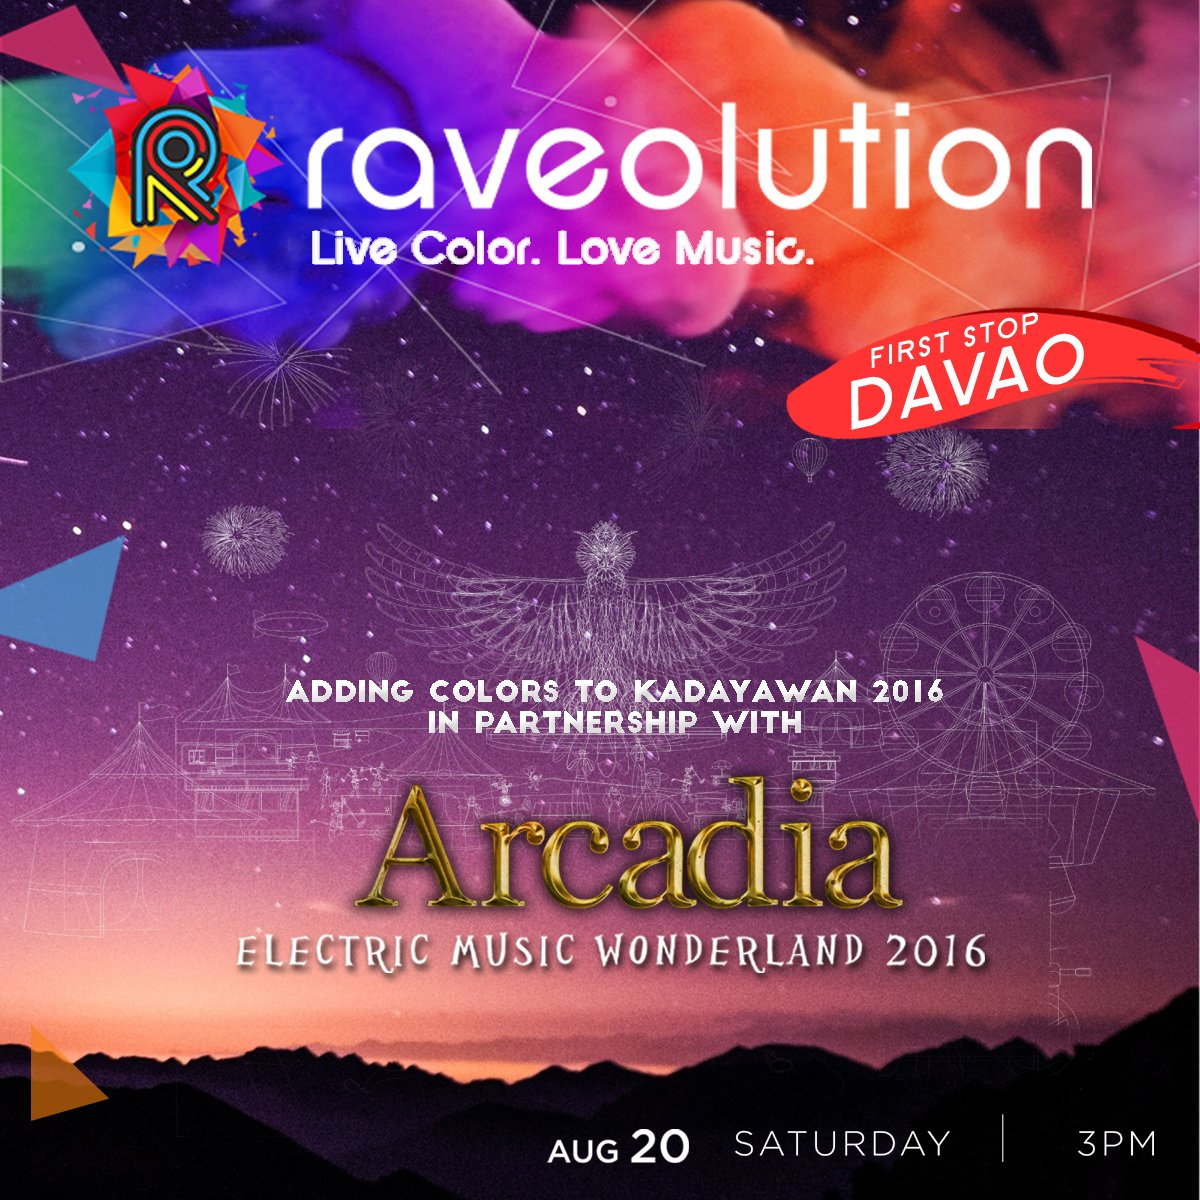 #Raveolutionph is going to Davao! Party with us and Arcadia Electric Music Wonderland 2016 on Aug 20! #UniteInColor https://t.co/lwUwfi0y02